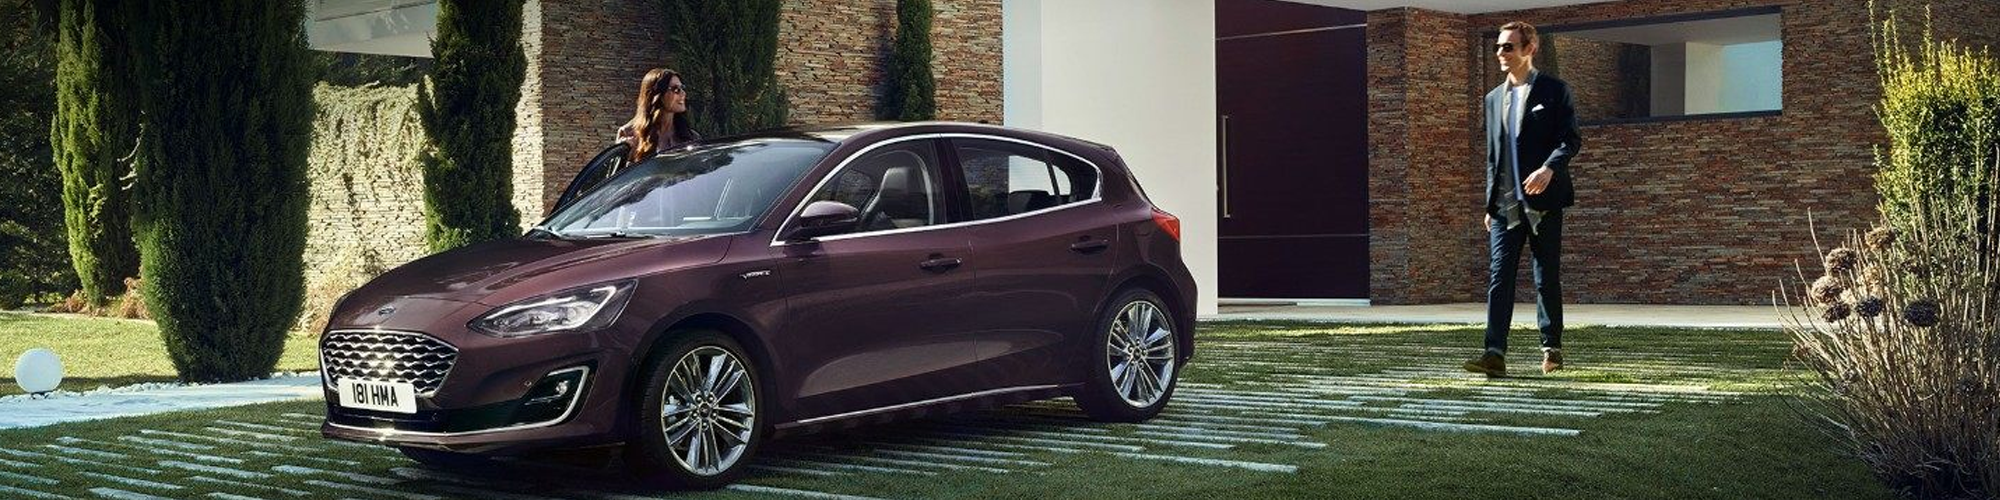 All New Ford Focus Vignale